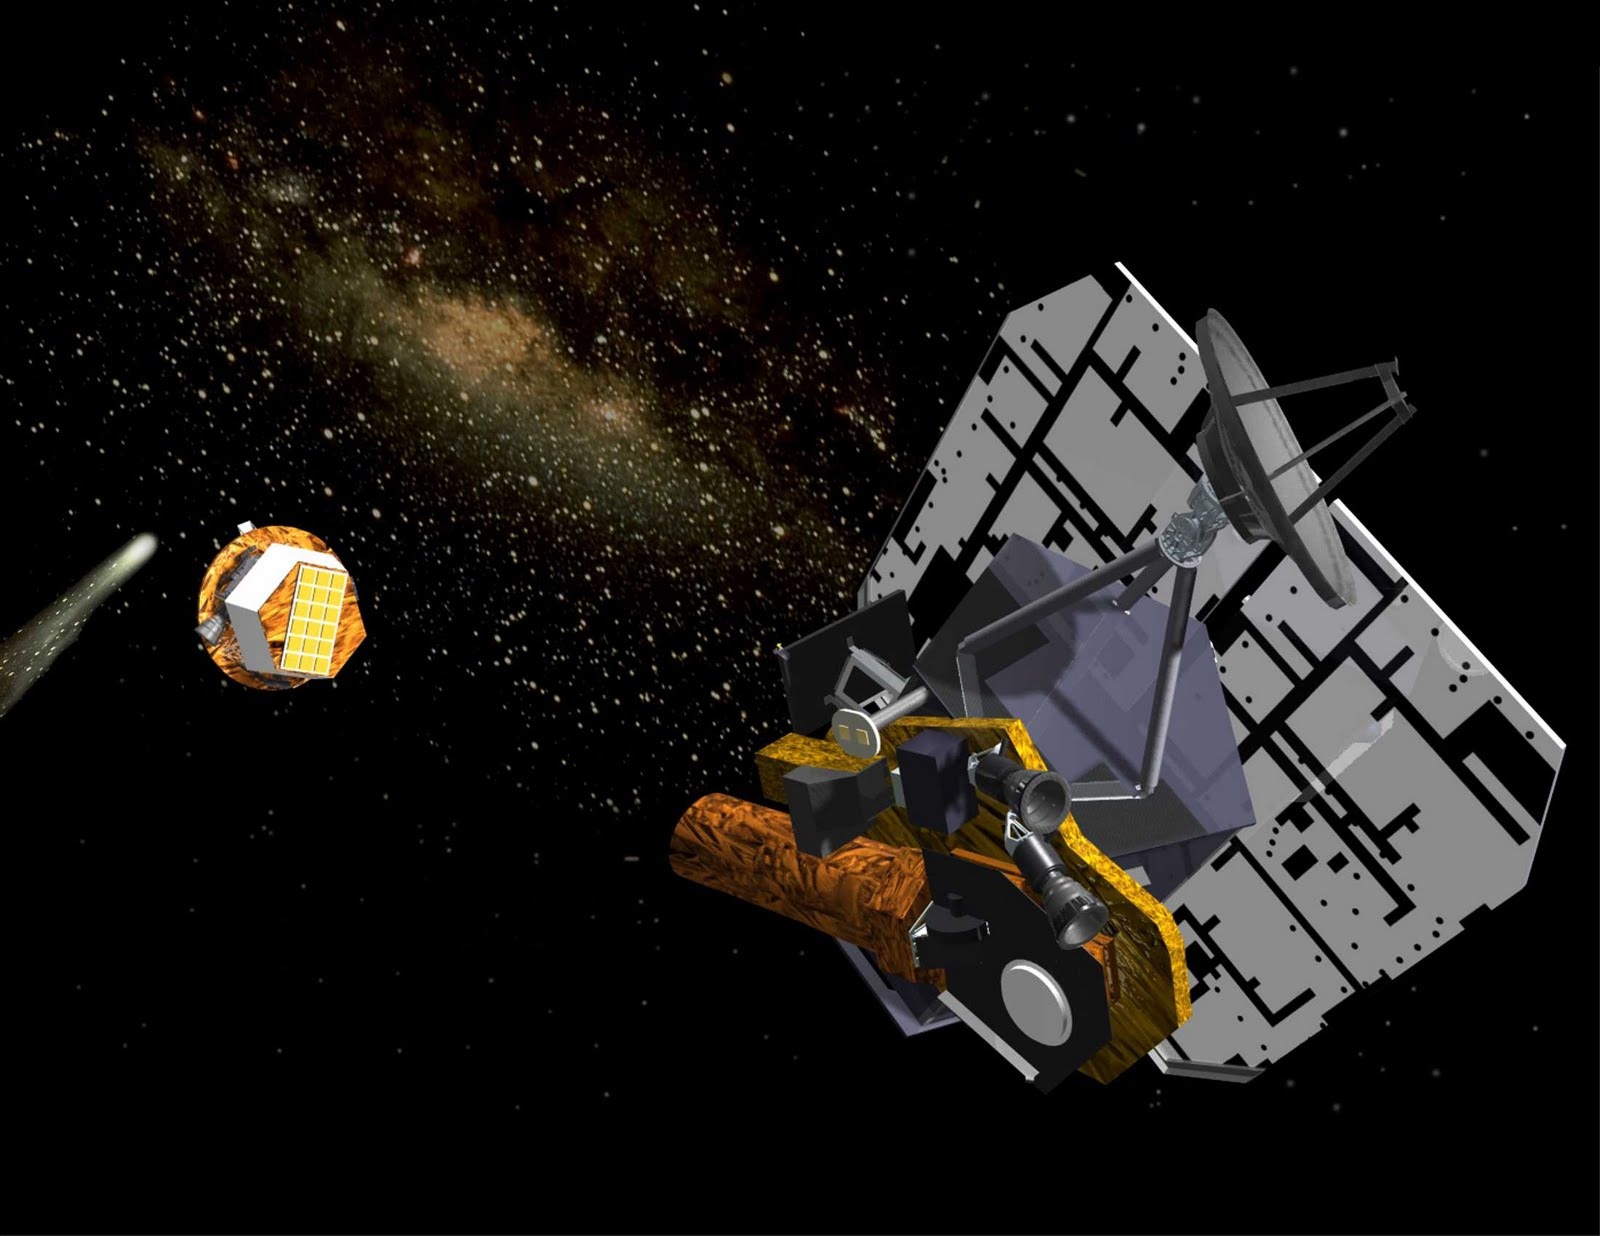 Us First Space Probe : Deep impact space probe public domain clip art photos and